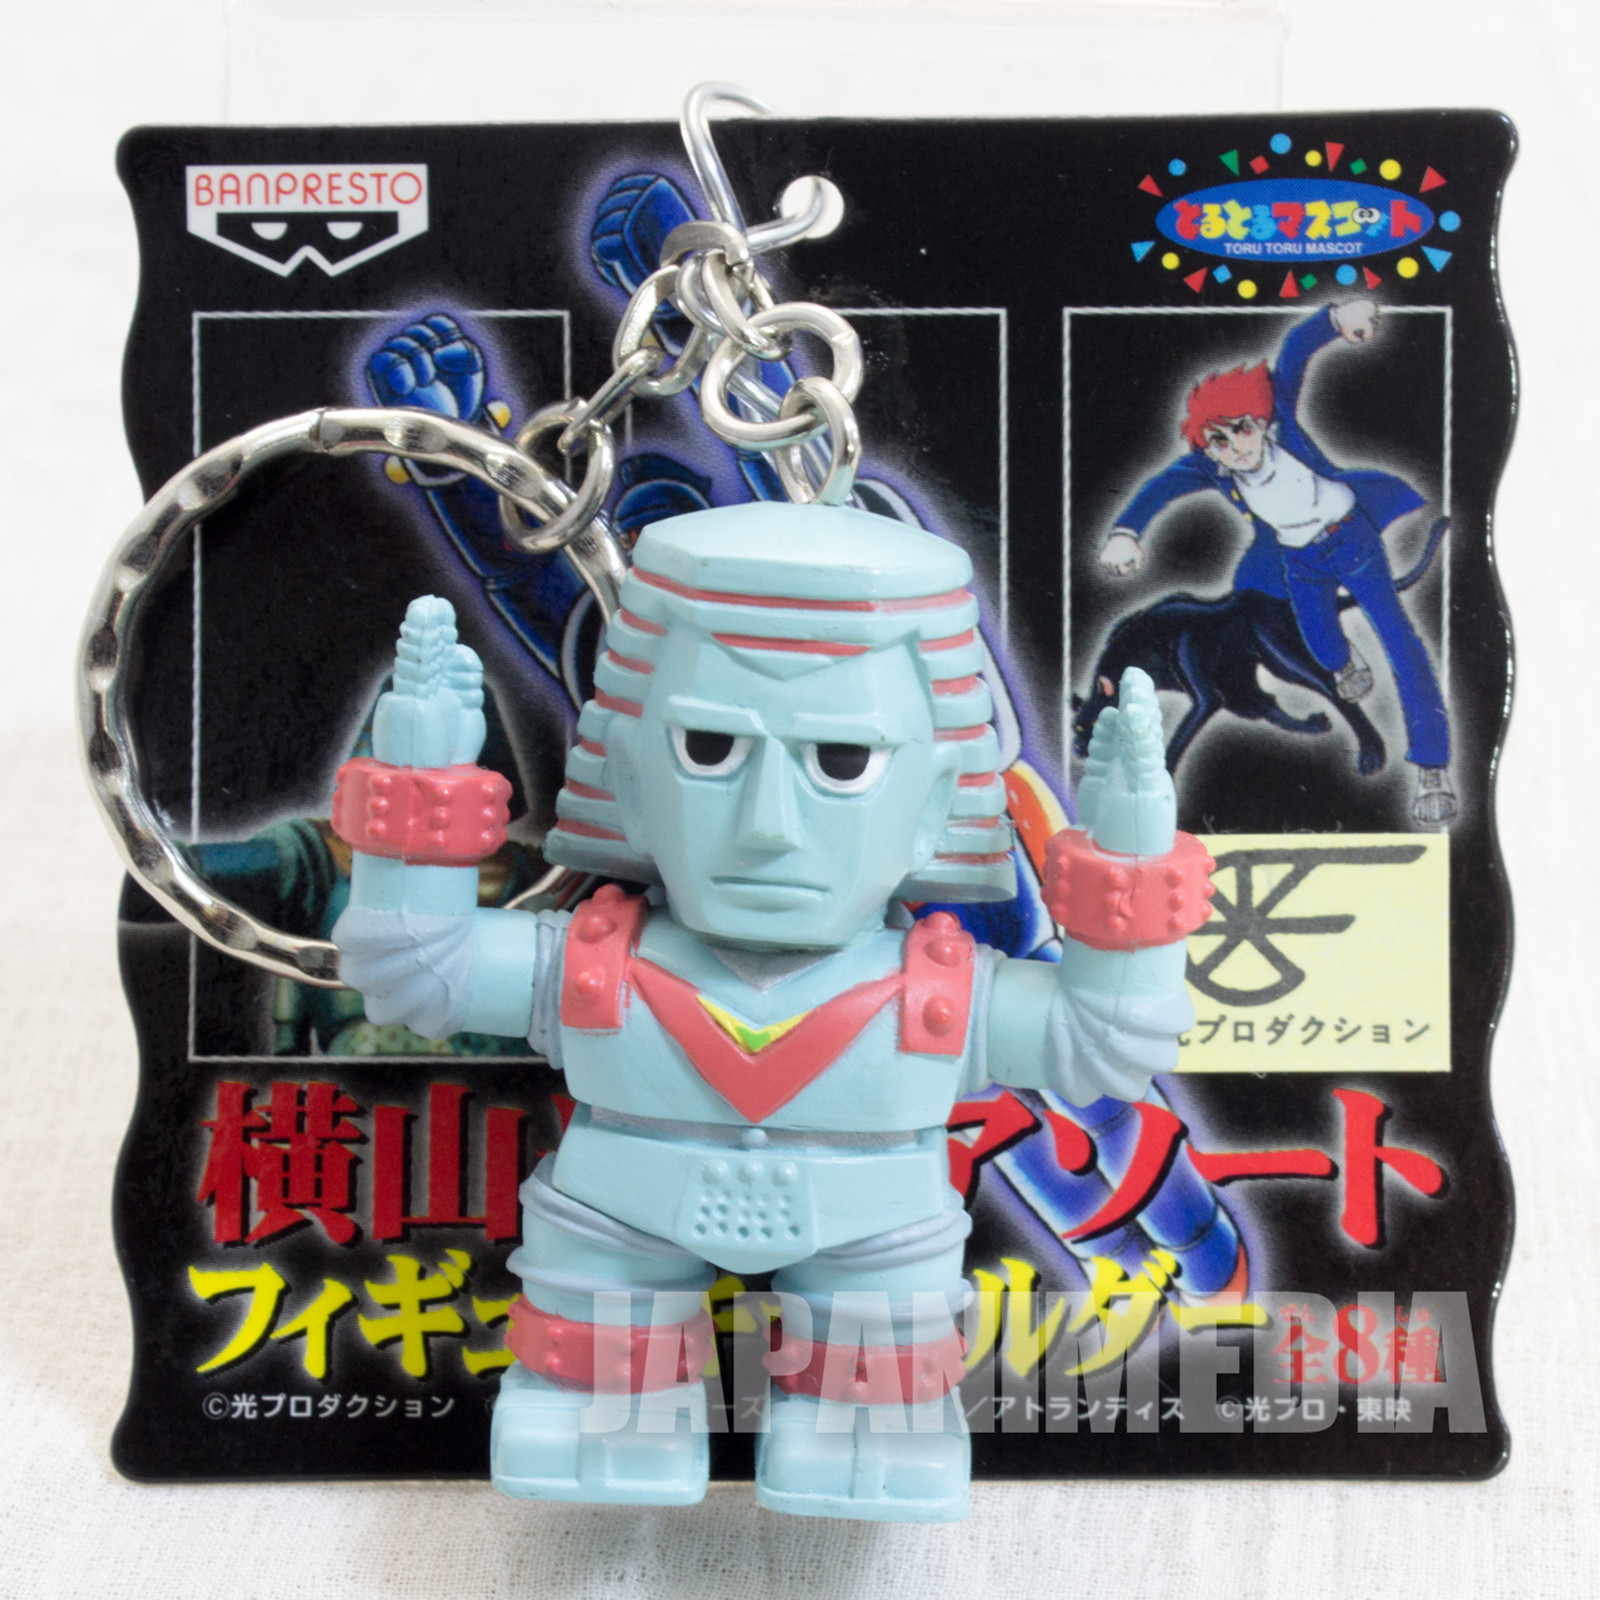 Giant Robo GR1 Mitsuteru Yokoyama Figure Key Chain Banpresto JAPAN ANIME MANGA